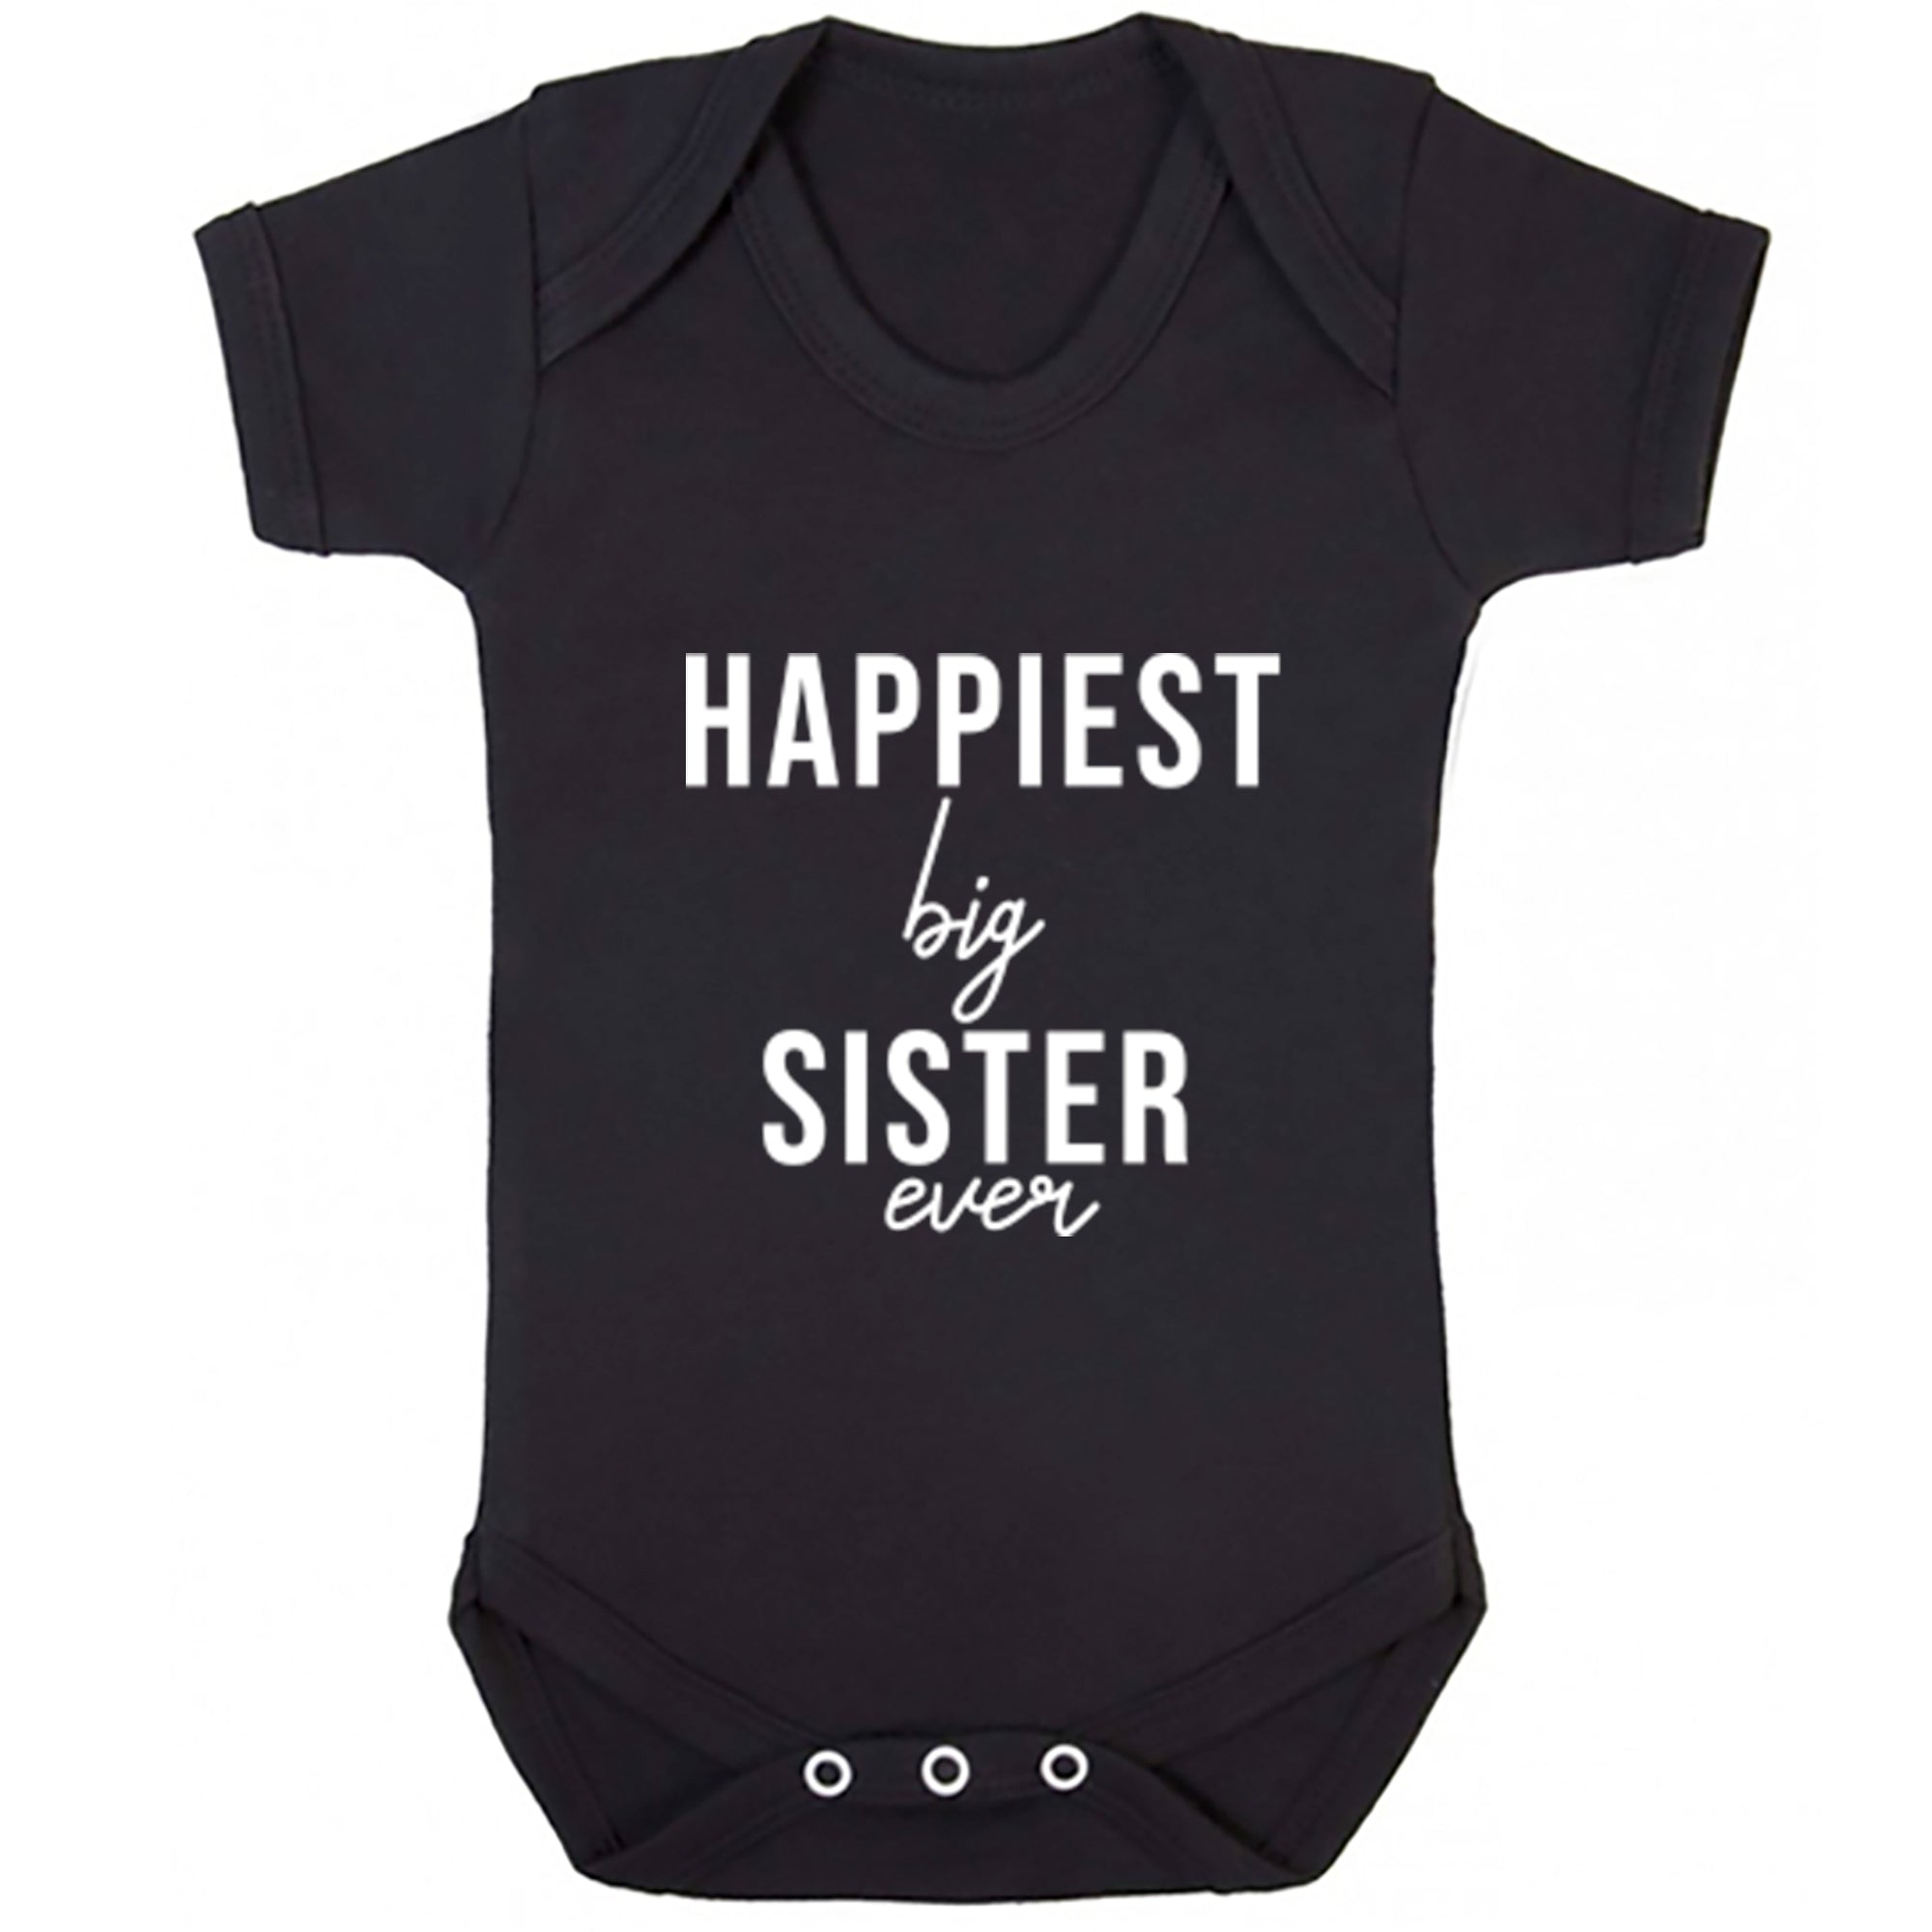 Happiest Big Sister Ever Baby Vest S0515 - Illustrated Identity Ltd.